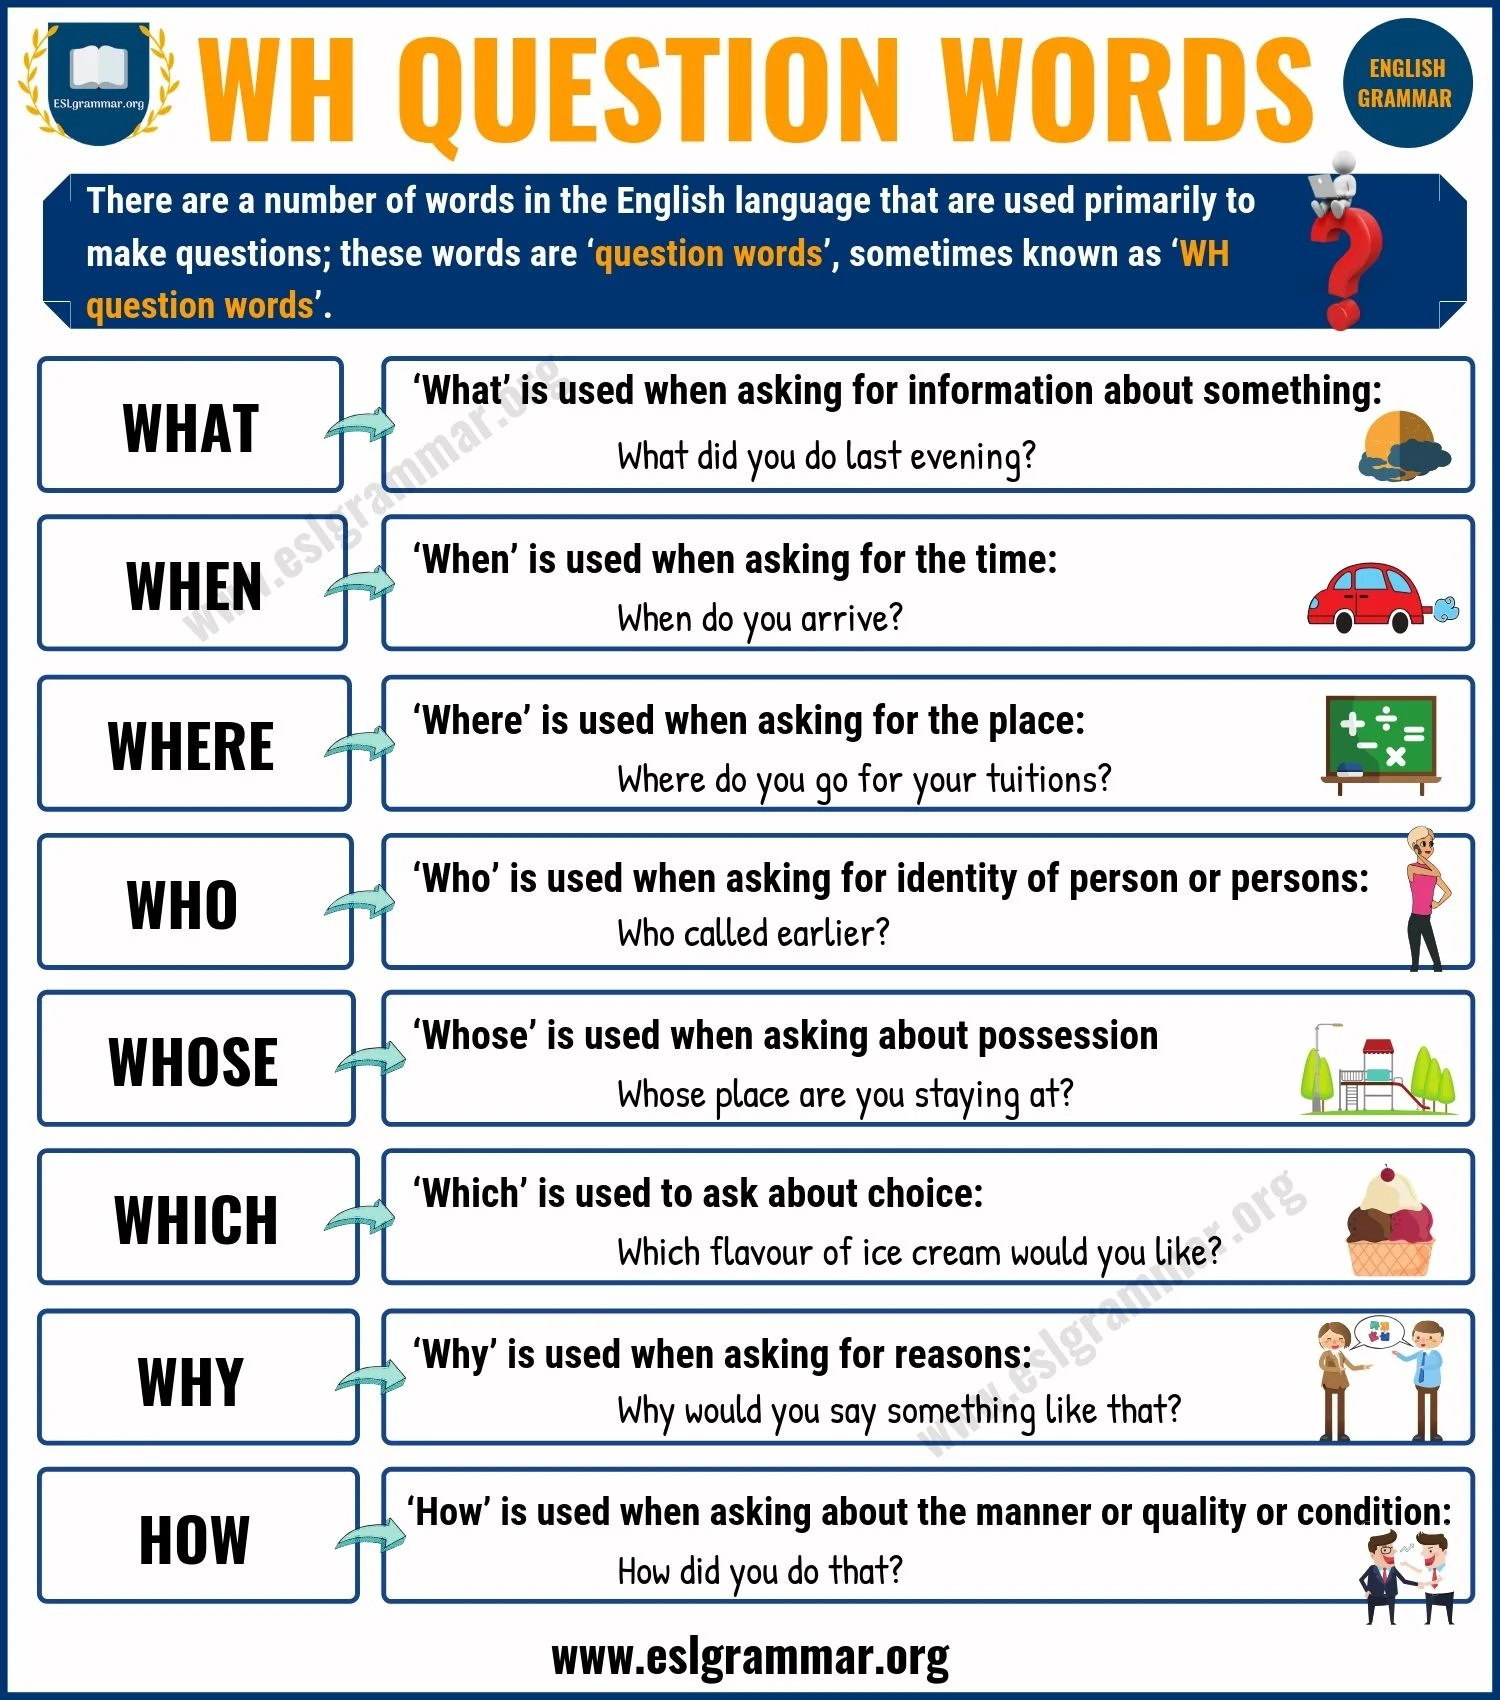 Wh Questions Words 8 Basic Question Words With Definition